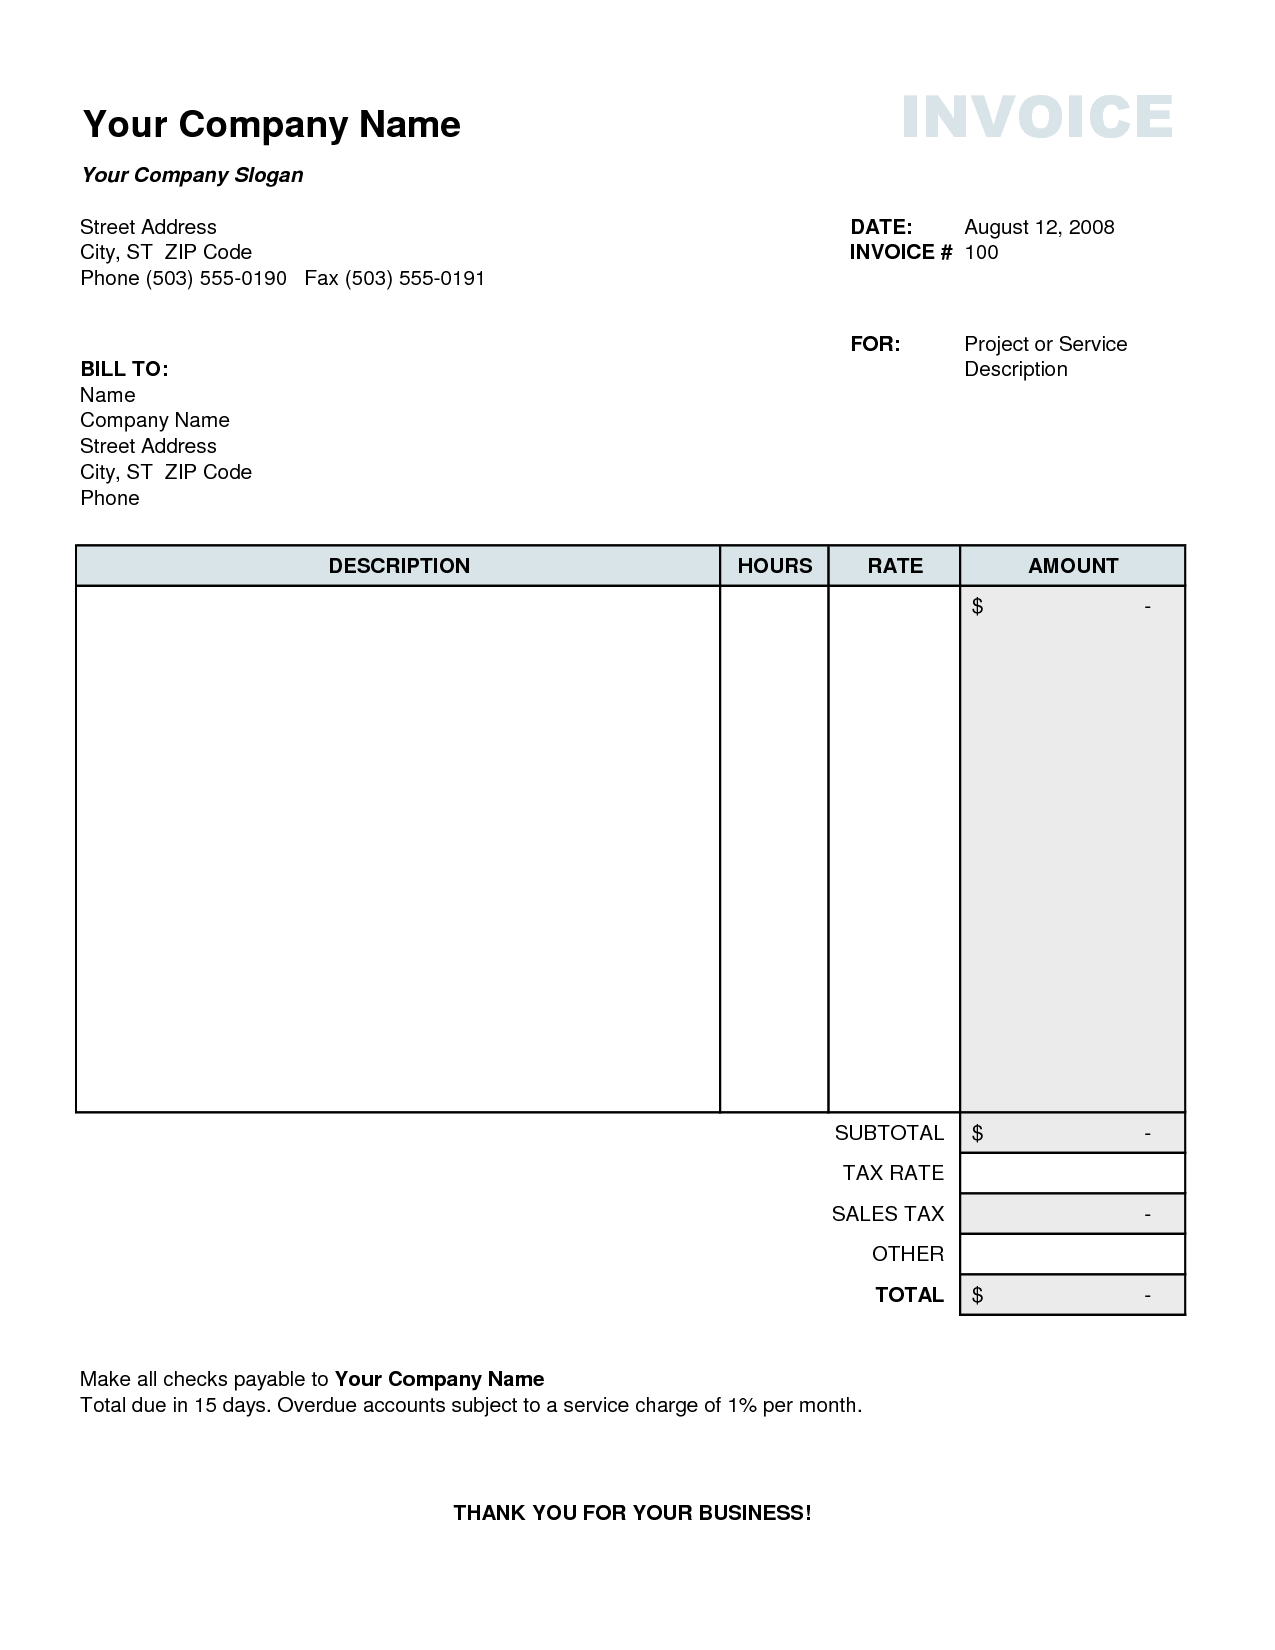 Invoice Template Excel Australia Kevincoynepagetk - Easy invoice maker for service business